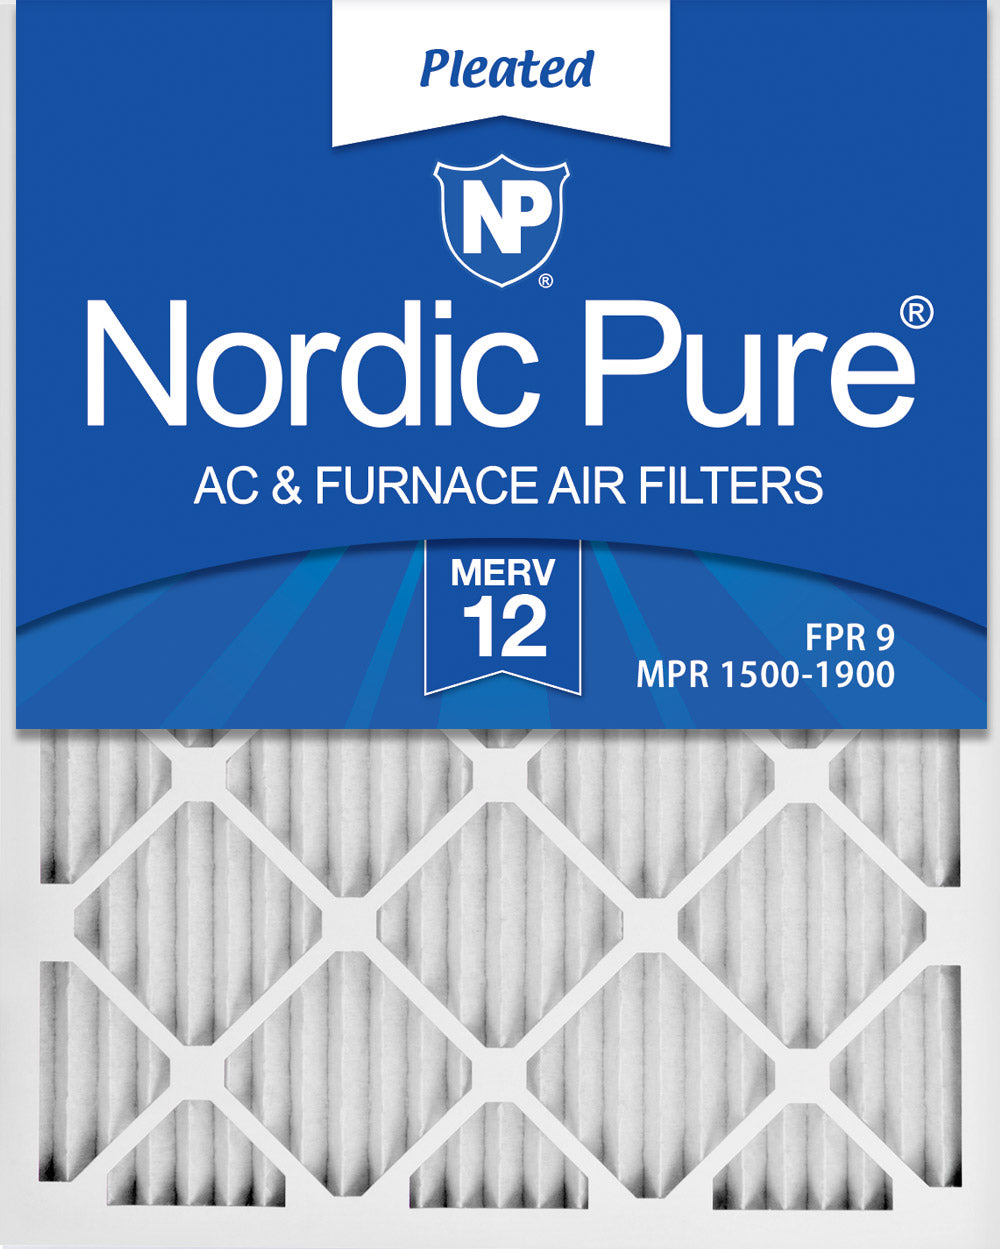 14x24x1 Pleated MERV 12 Air Filters 6 Pack